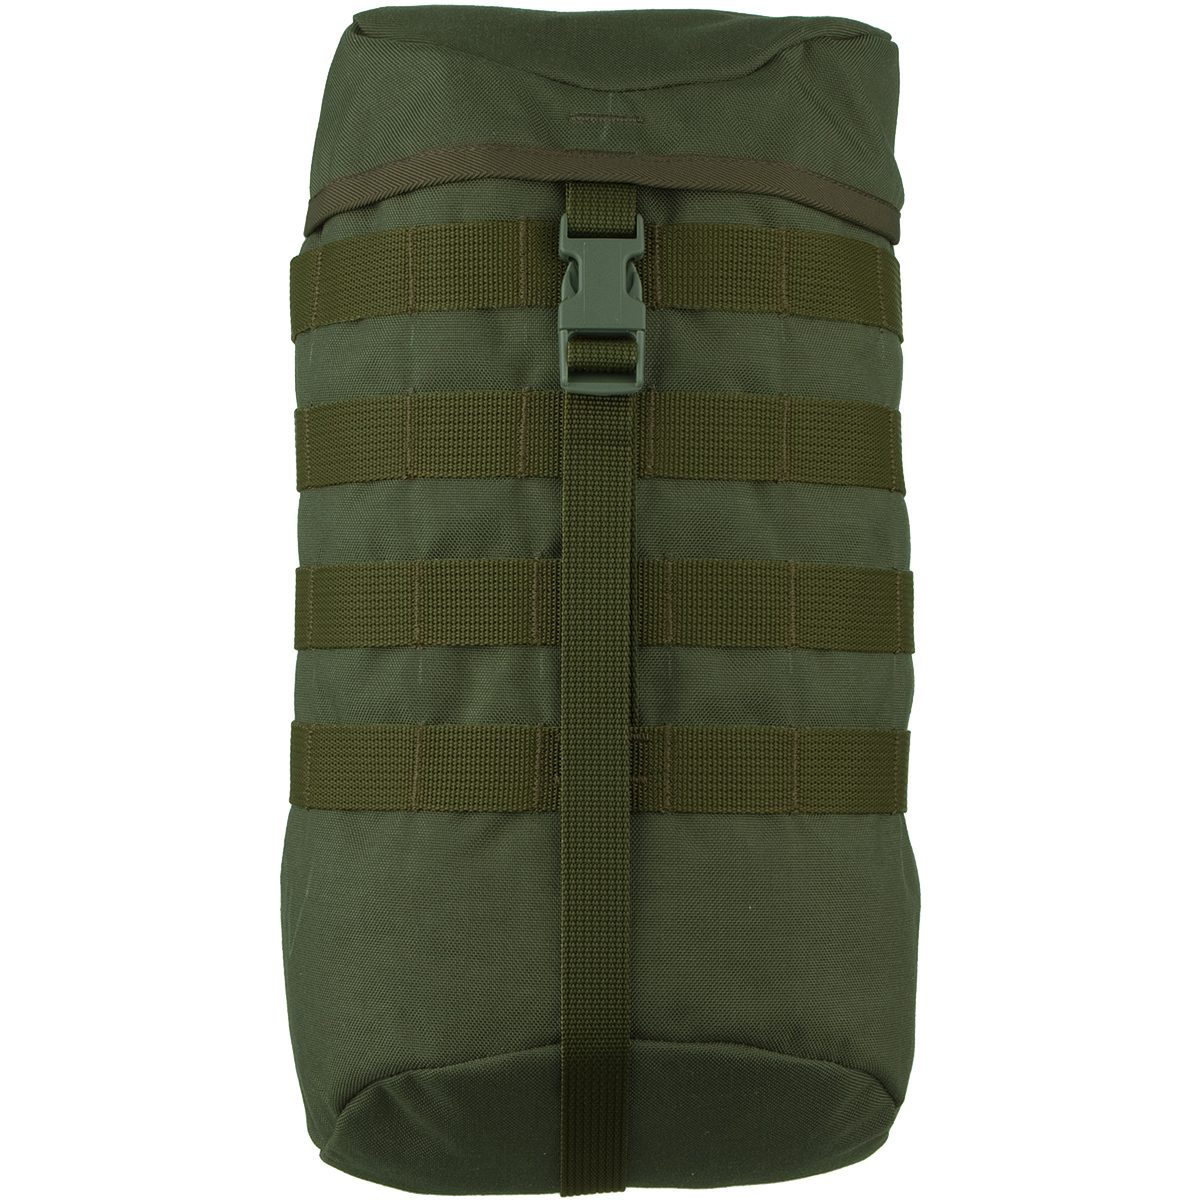 Wisport Raccoon Pocket Olive Green Accessories